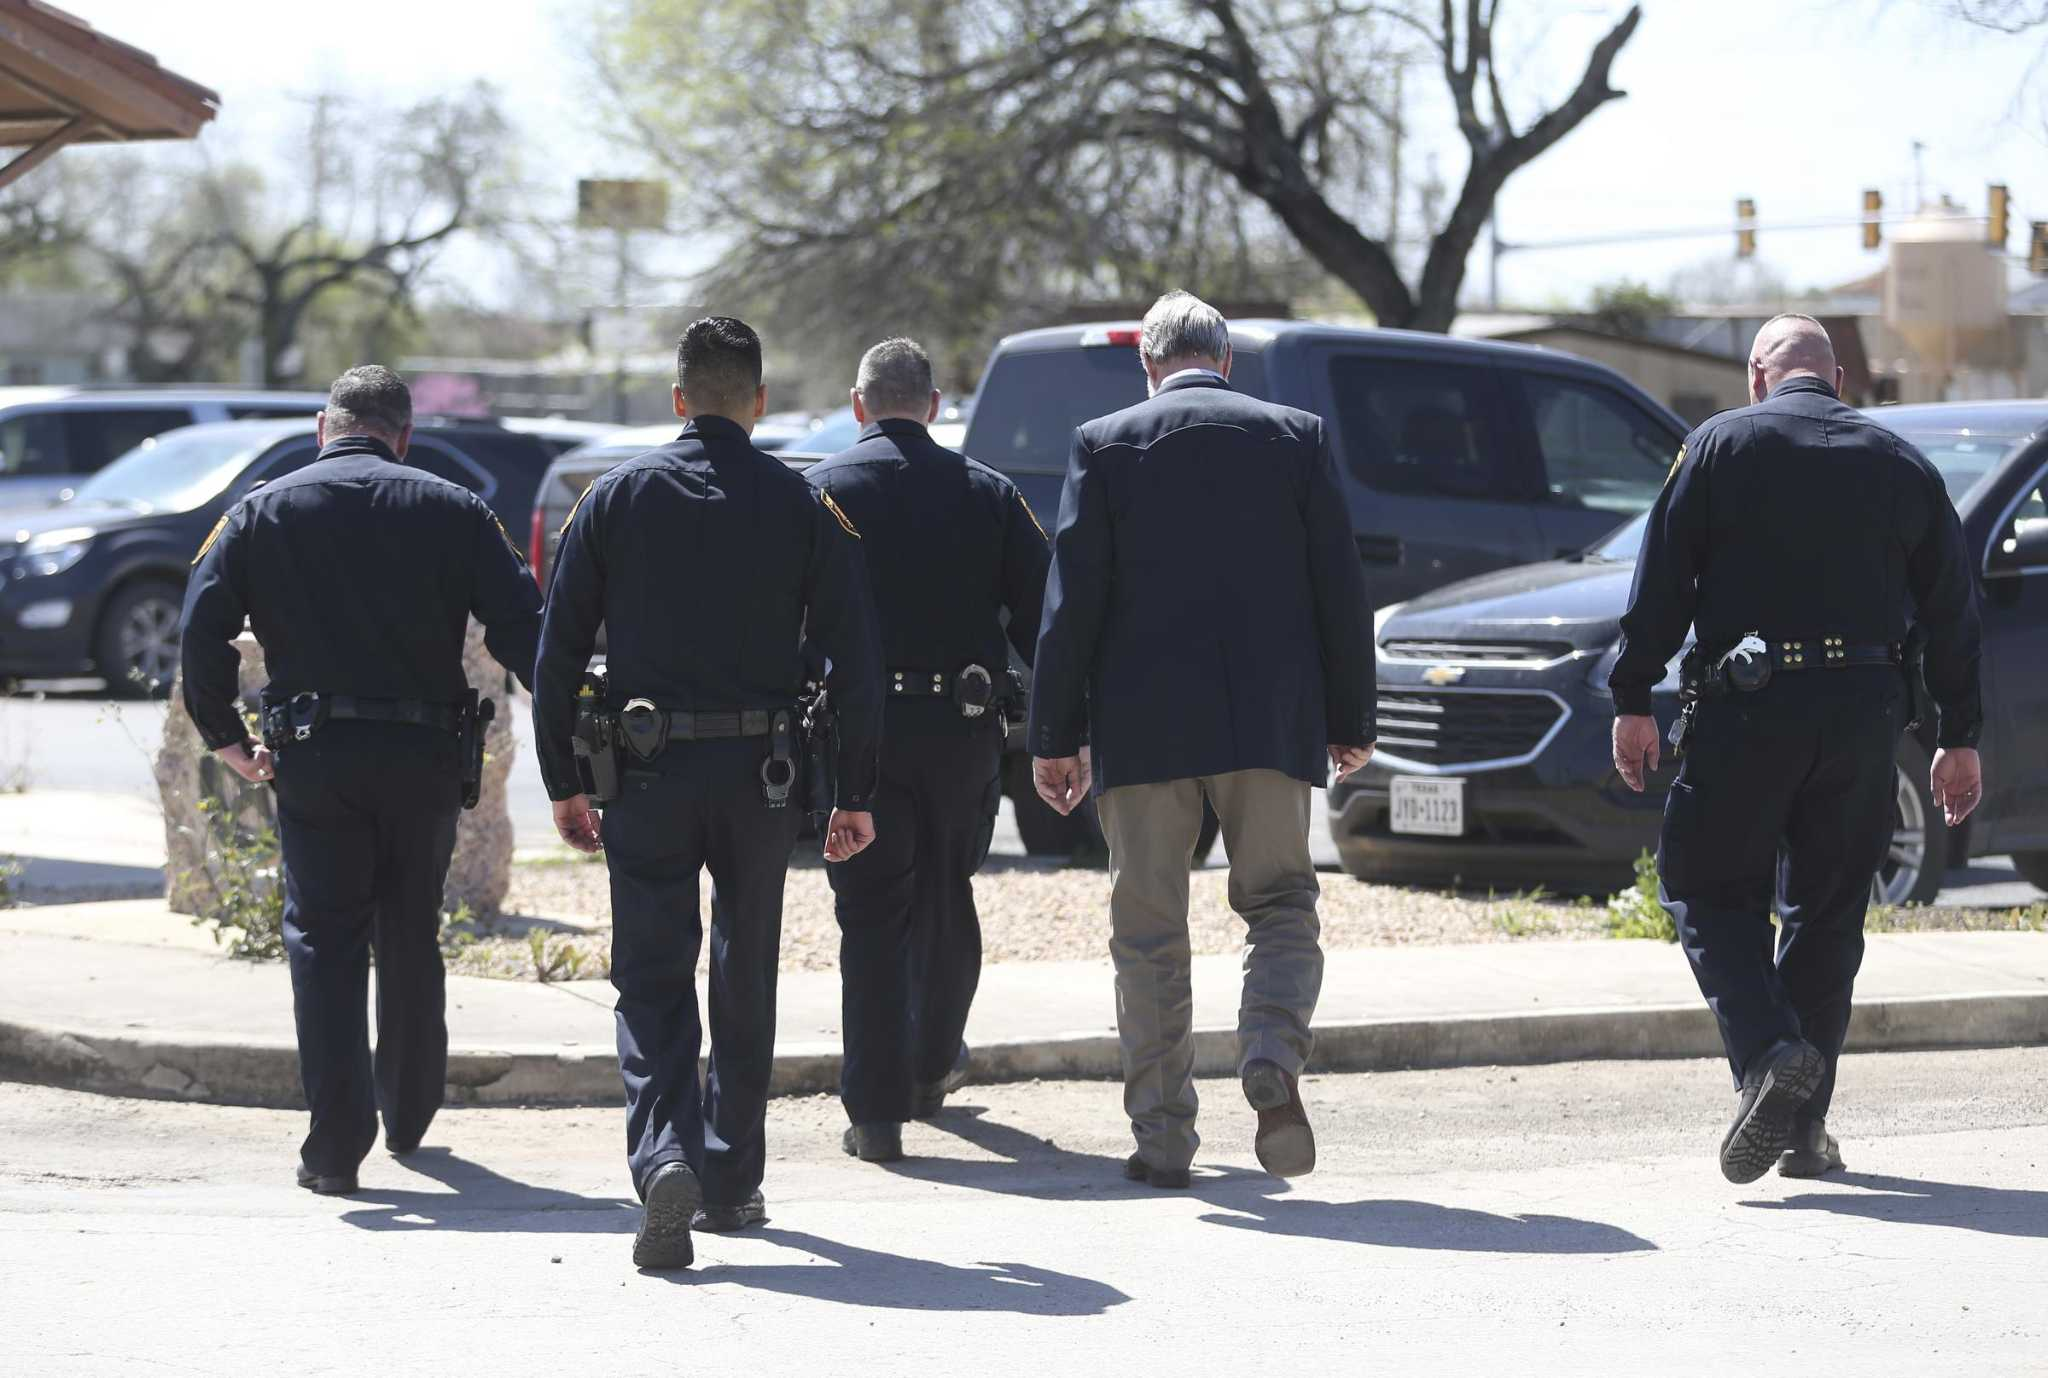 Jury now deliberating in SAPD officer's killing | My San Antonio